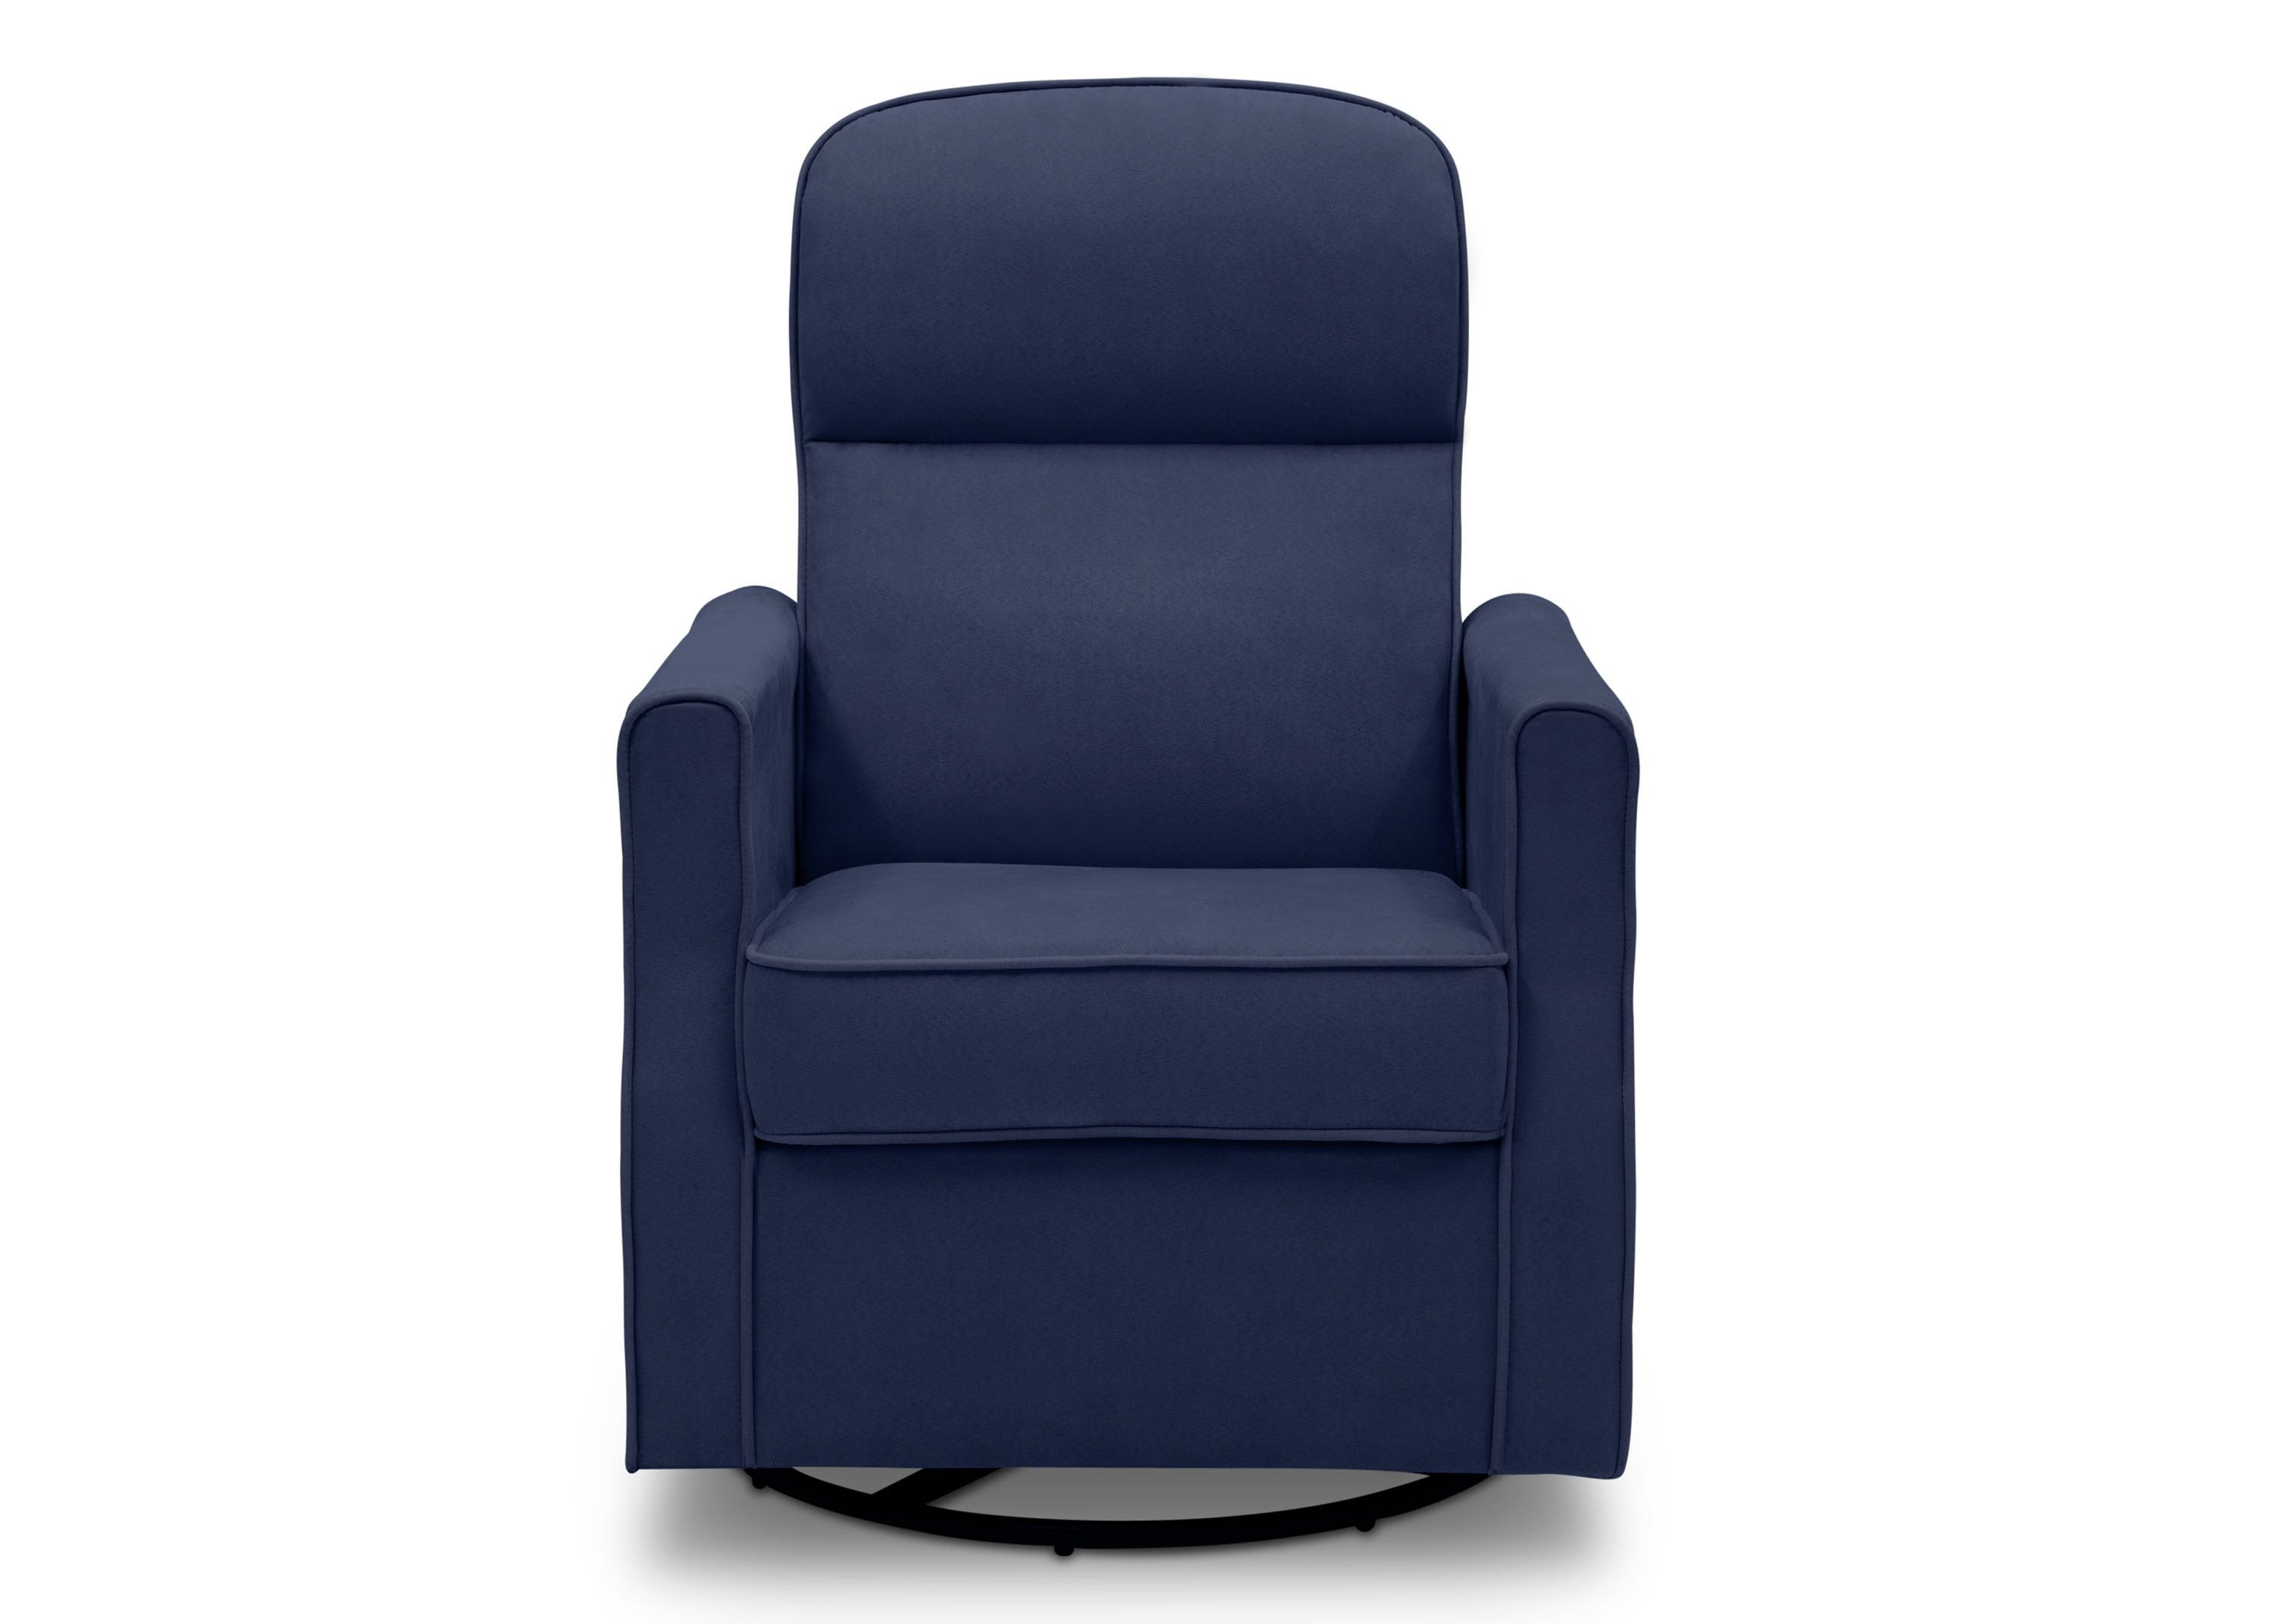 swivel and rocking chairs. Delta Children Navy (467) Clair Petite Nursery Glider Swivel Rocker Chair, Front View And Rocking Chairs